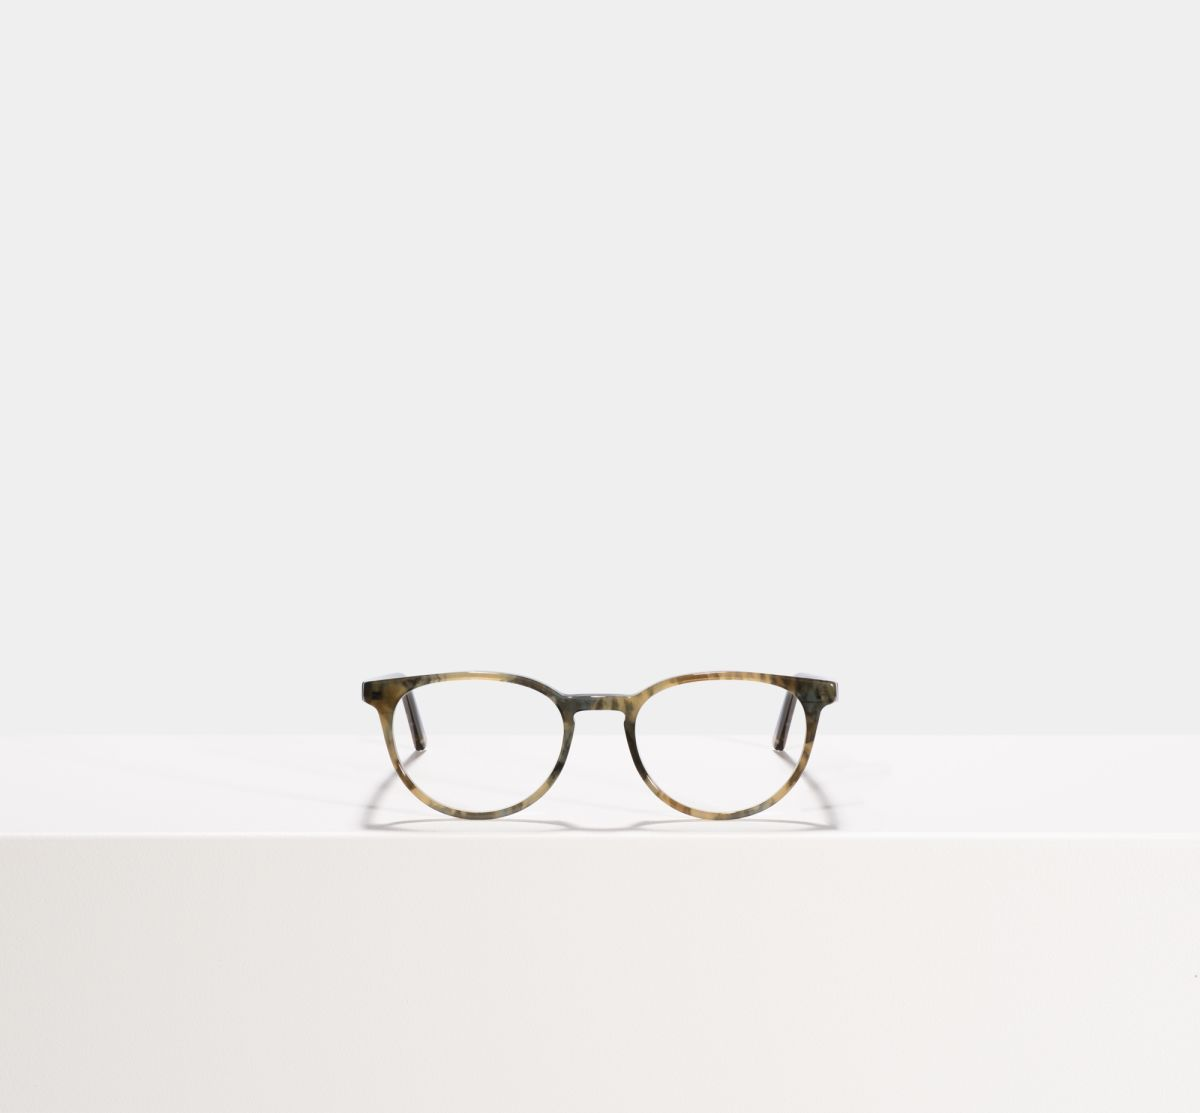 Damien rund Acetat glasses in Marbled Green by Ace & Tate